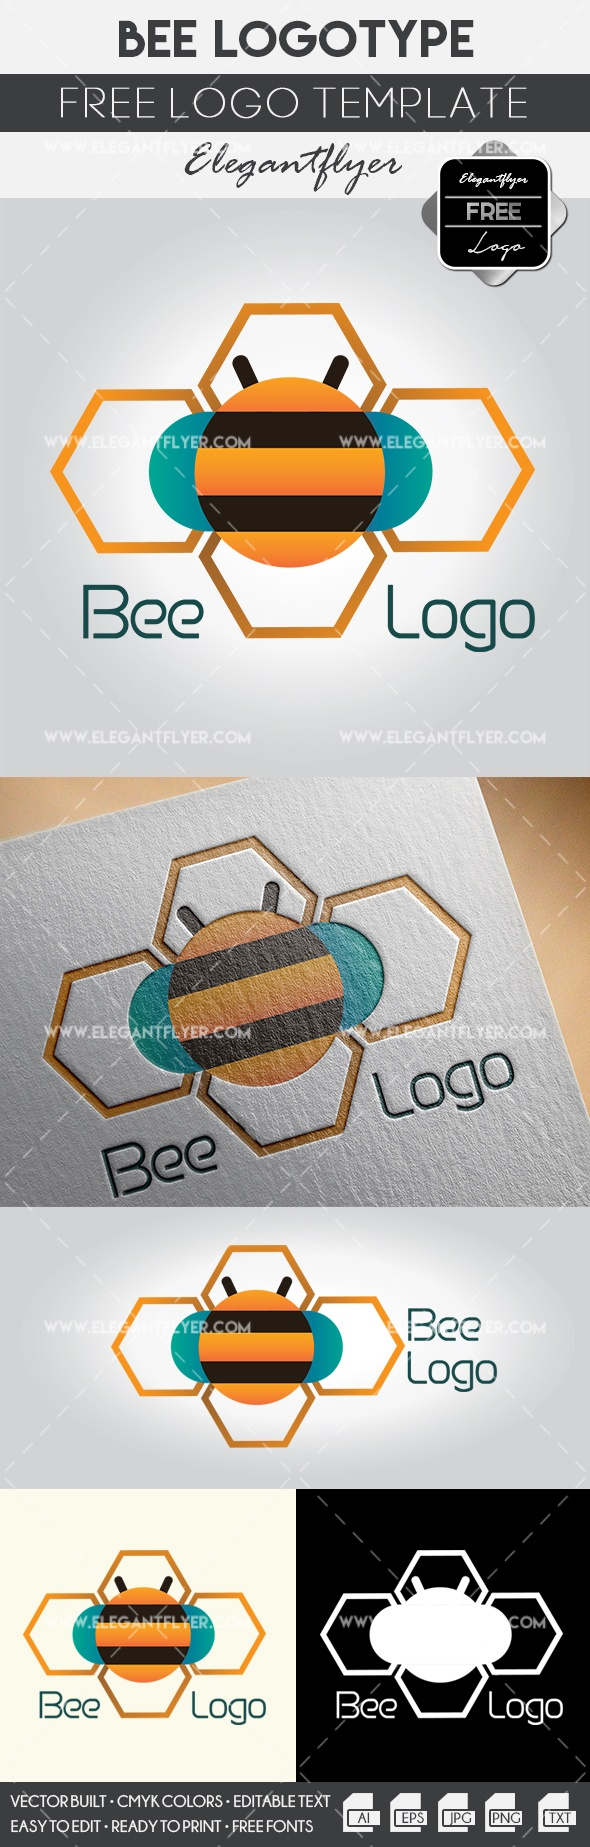 Bee – Free Logo Templates